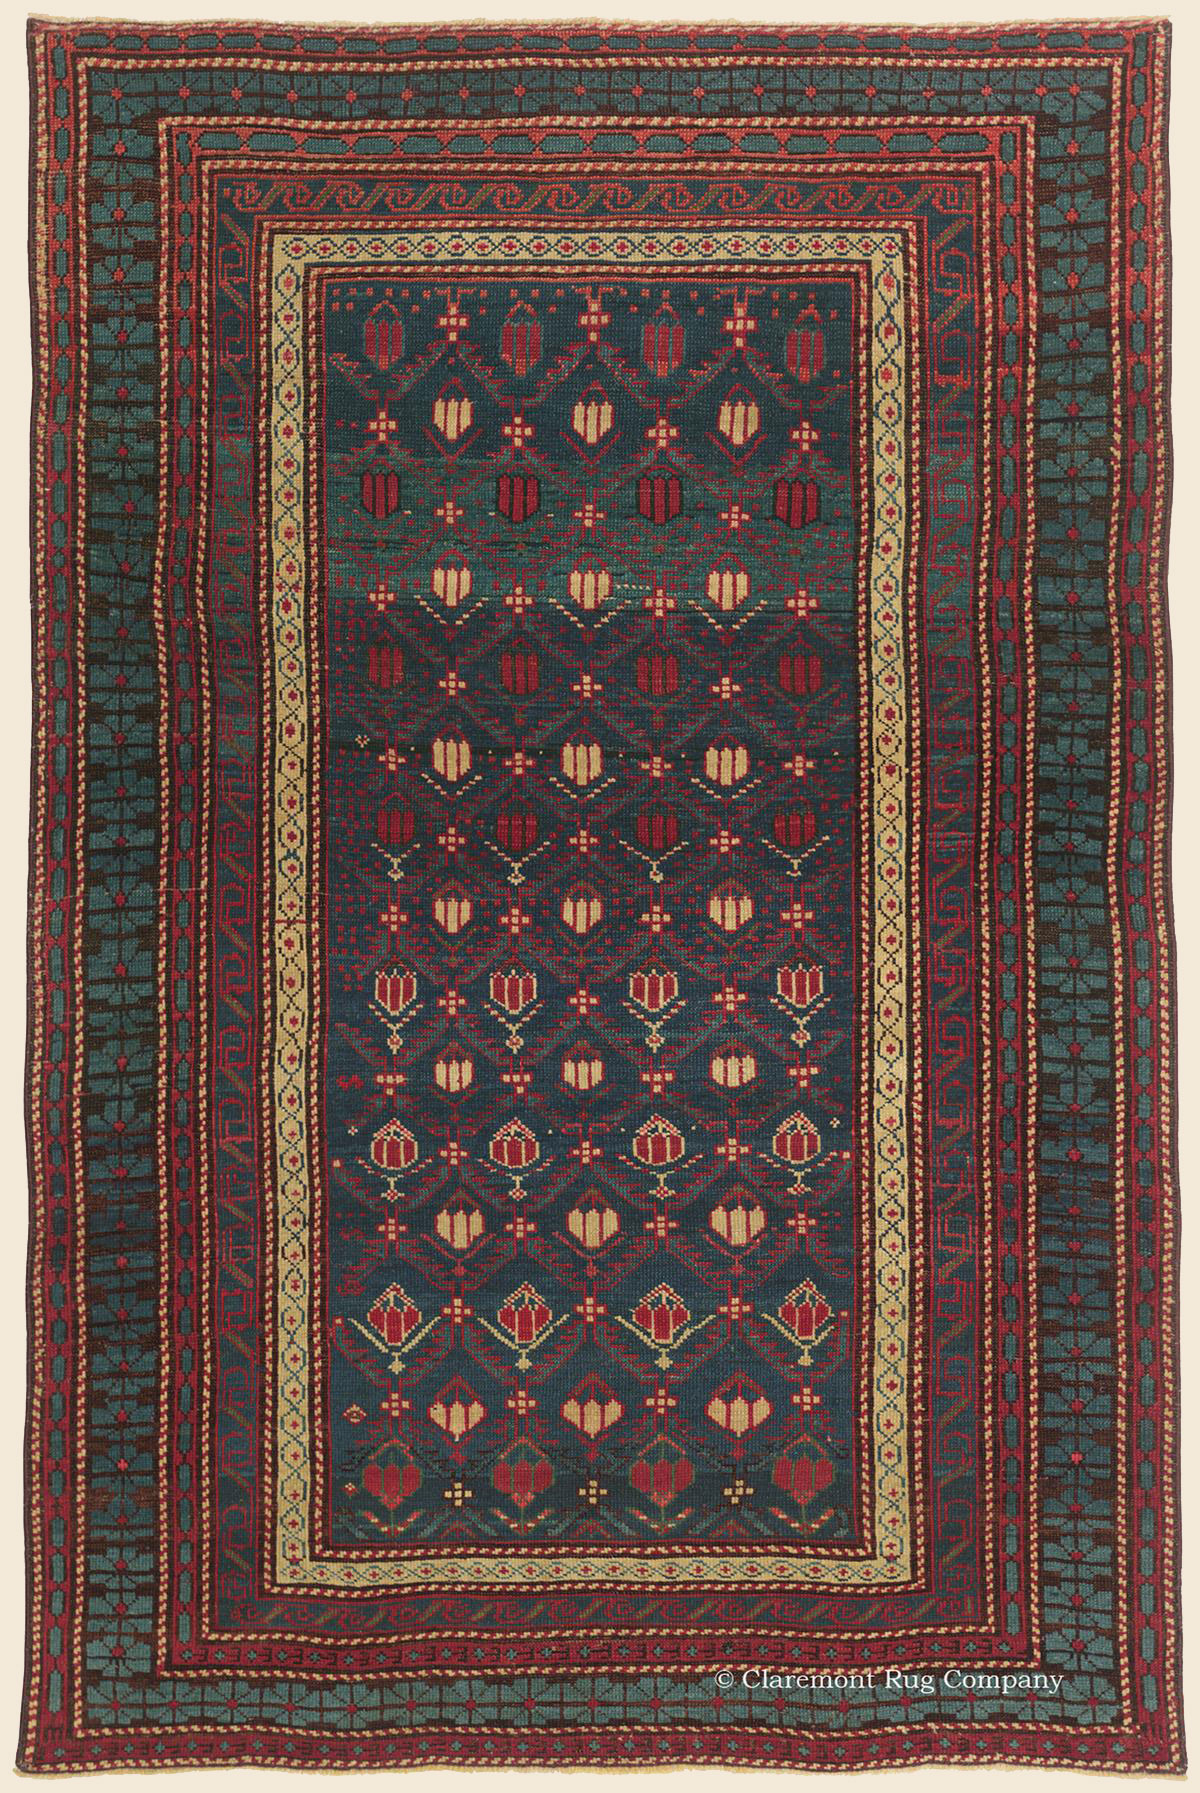 Shirvan Southeast Caucasian Antique Rug Claremont Rug